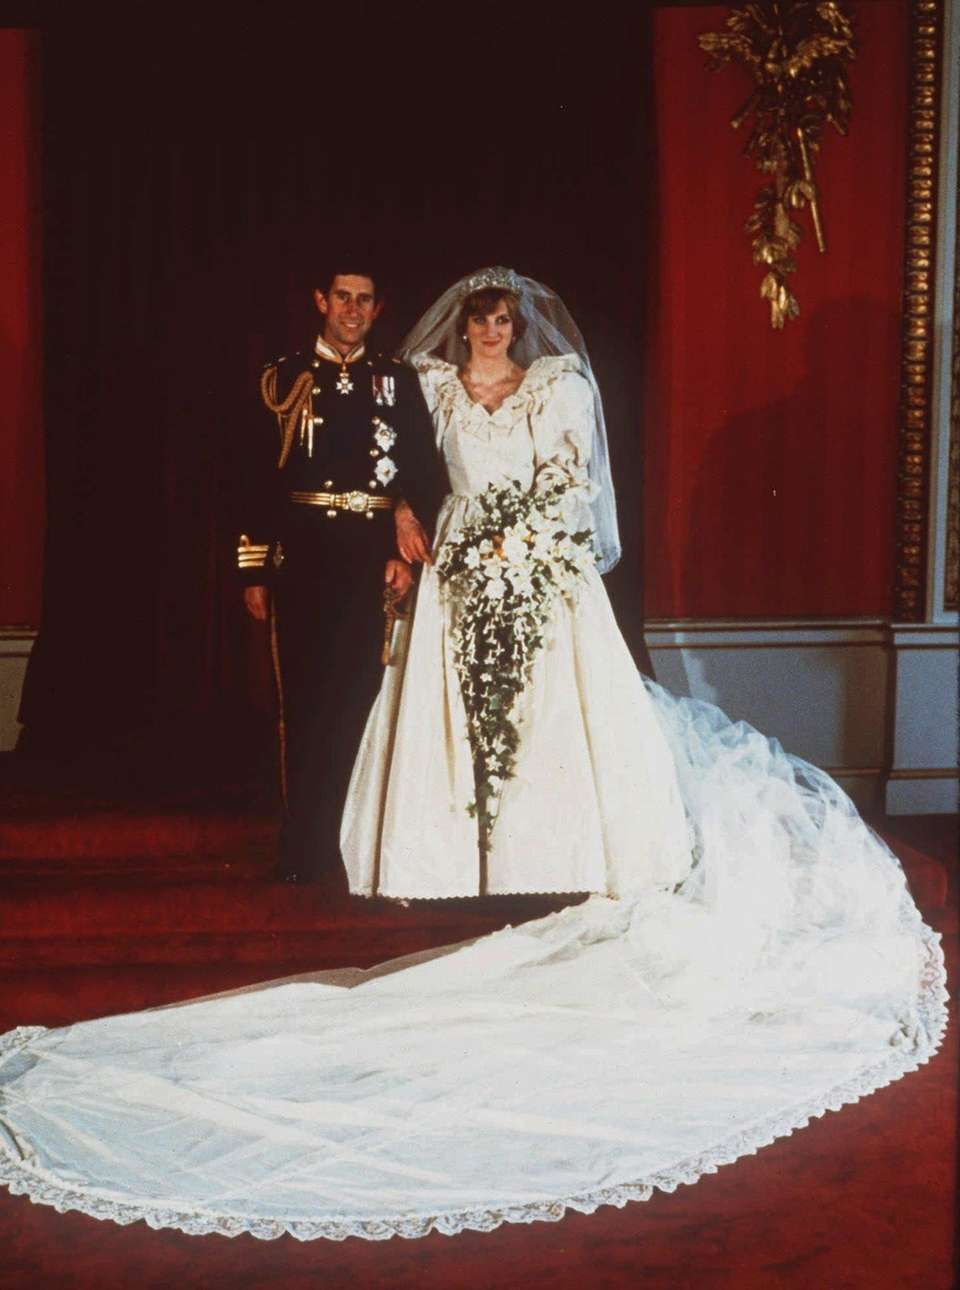 Prince Charles and Princess Diana pose for their